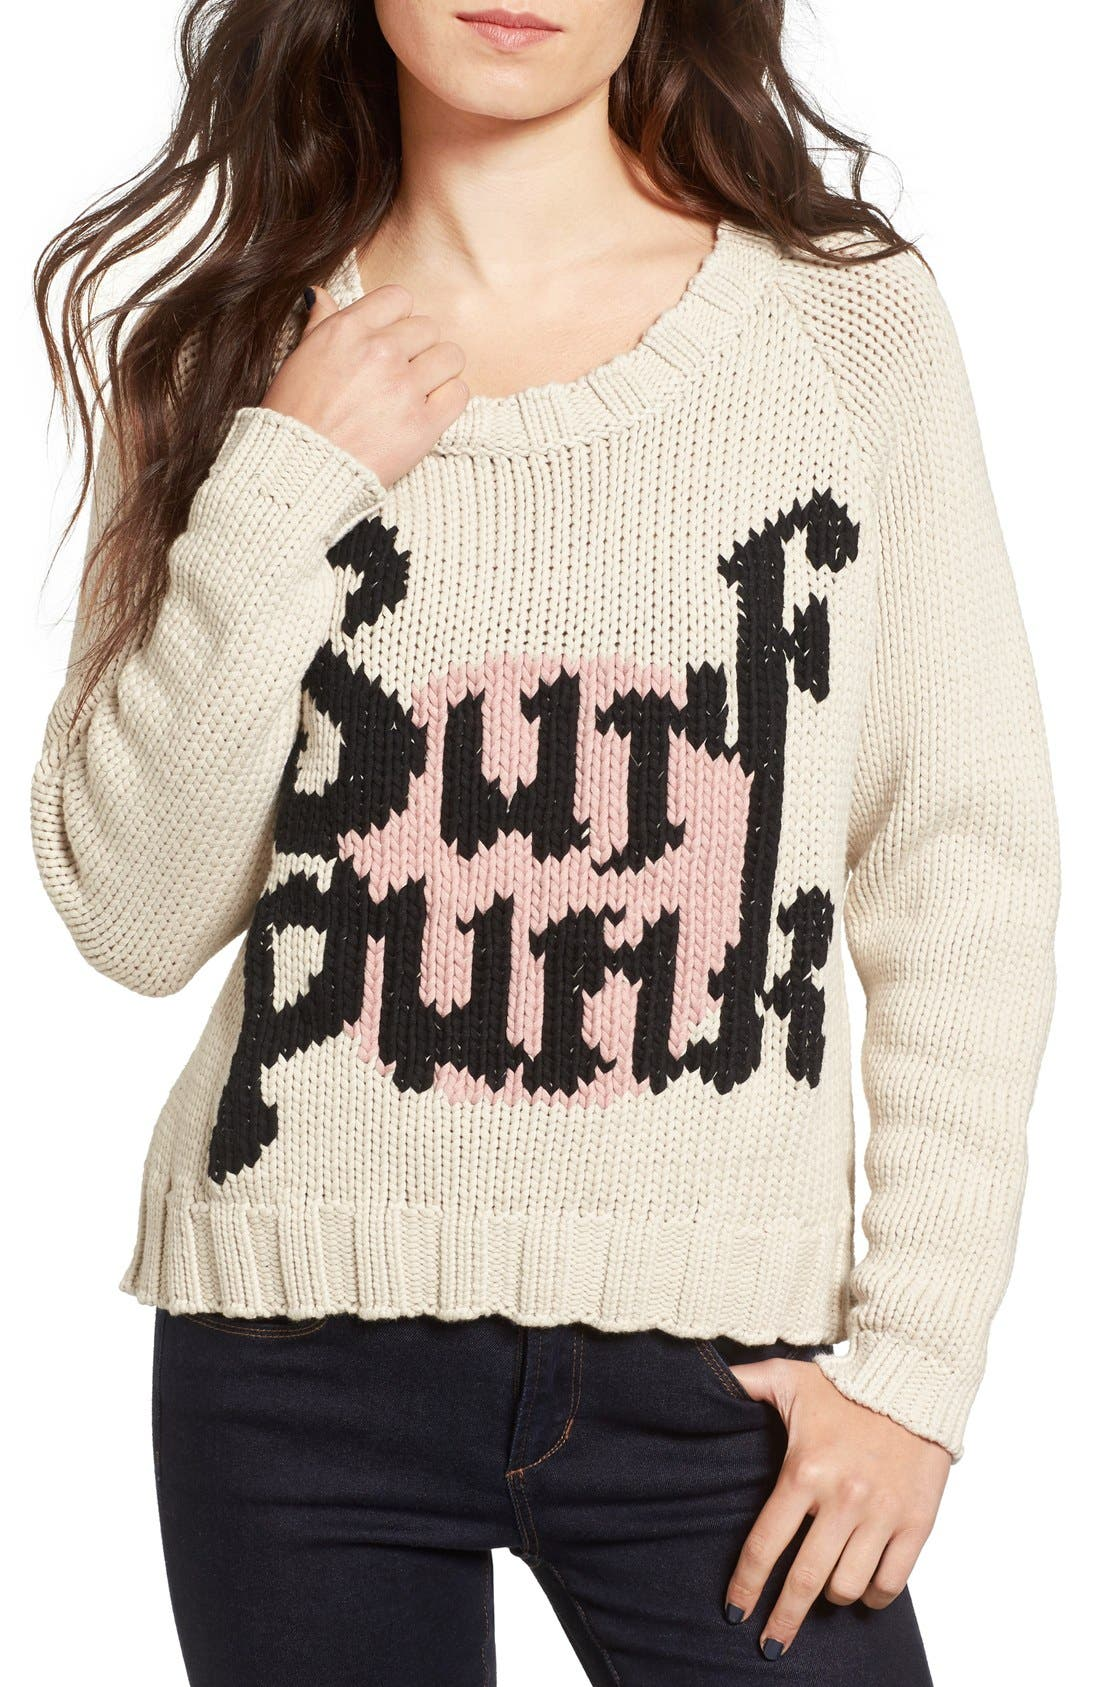 Main Image - One Teaspoon Surf Punk Intarsia Knit Sweater